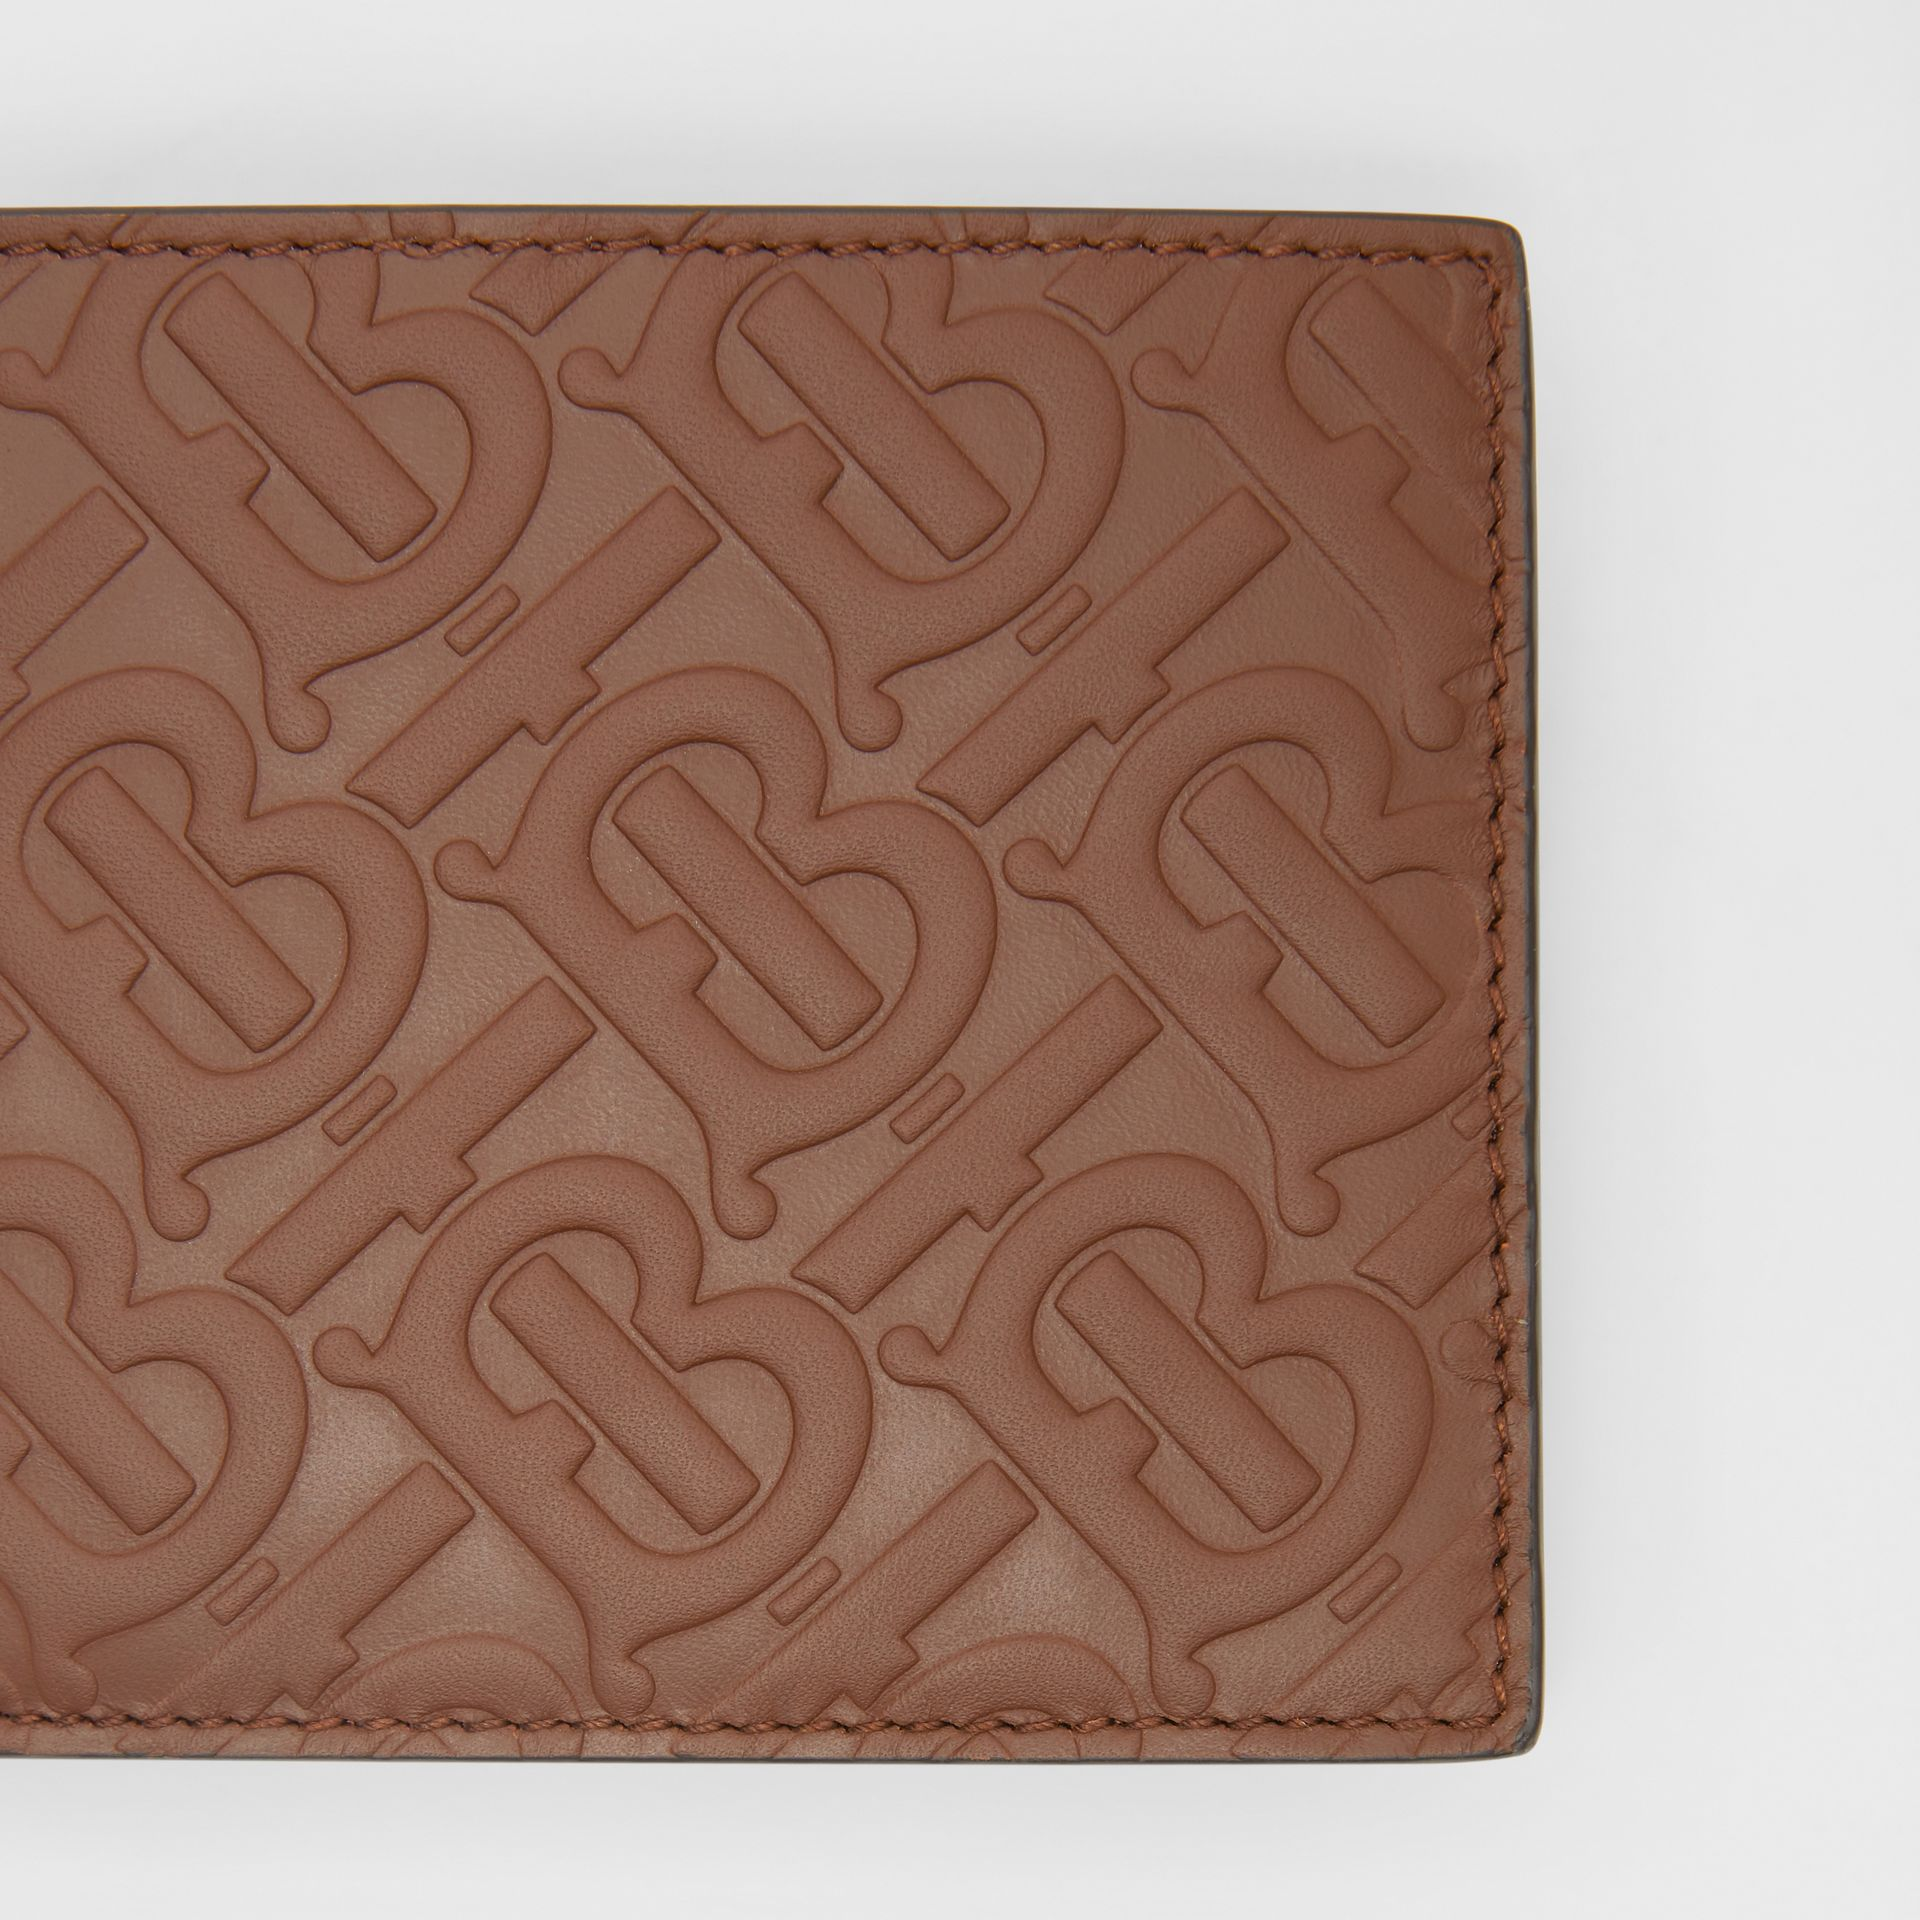 Monogram Leather International Bifold Wallet in Dark Tan - Men | Burberry - gallery image 1